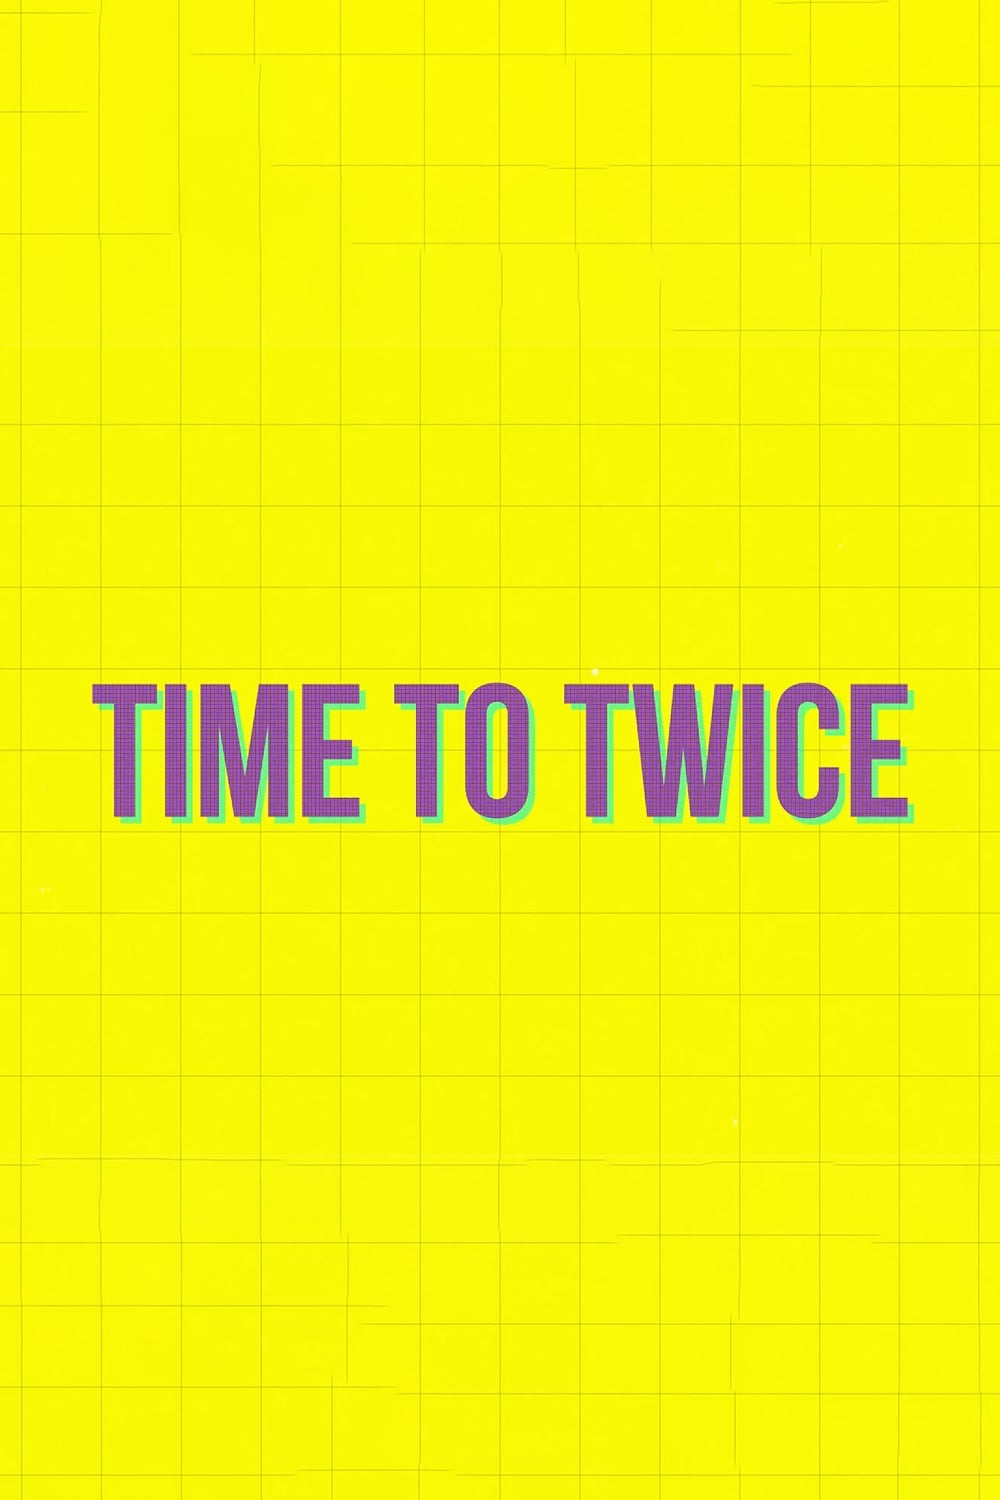 TIME TO TWICE (2020)